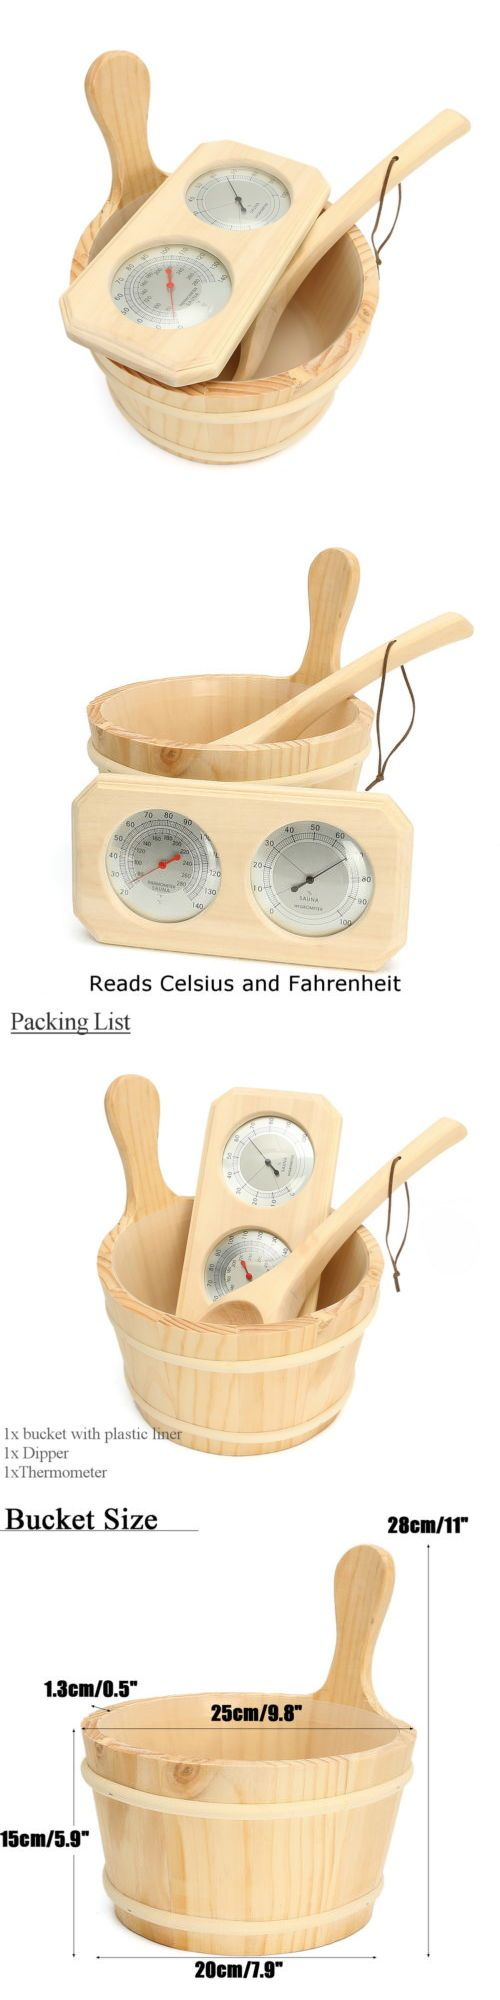 Saunas 181054: 3Pcs Set Pine Wood Sauna Accessory Set Bucket Thermometer Hygrometer Spoon D -> BUY IT NOW ONLY: $48.99 on eBay!